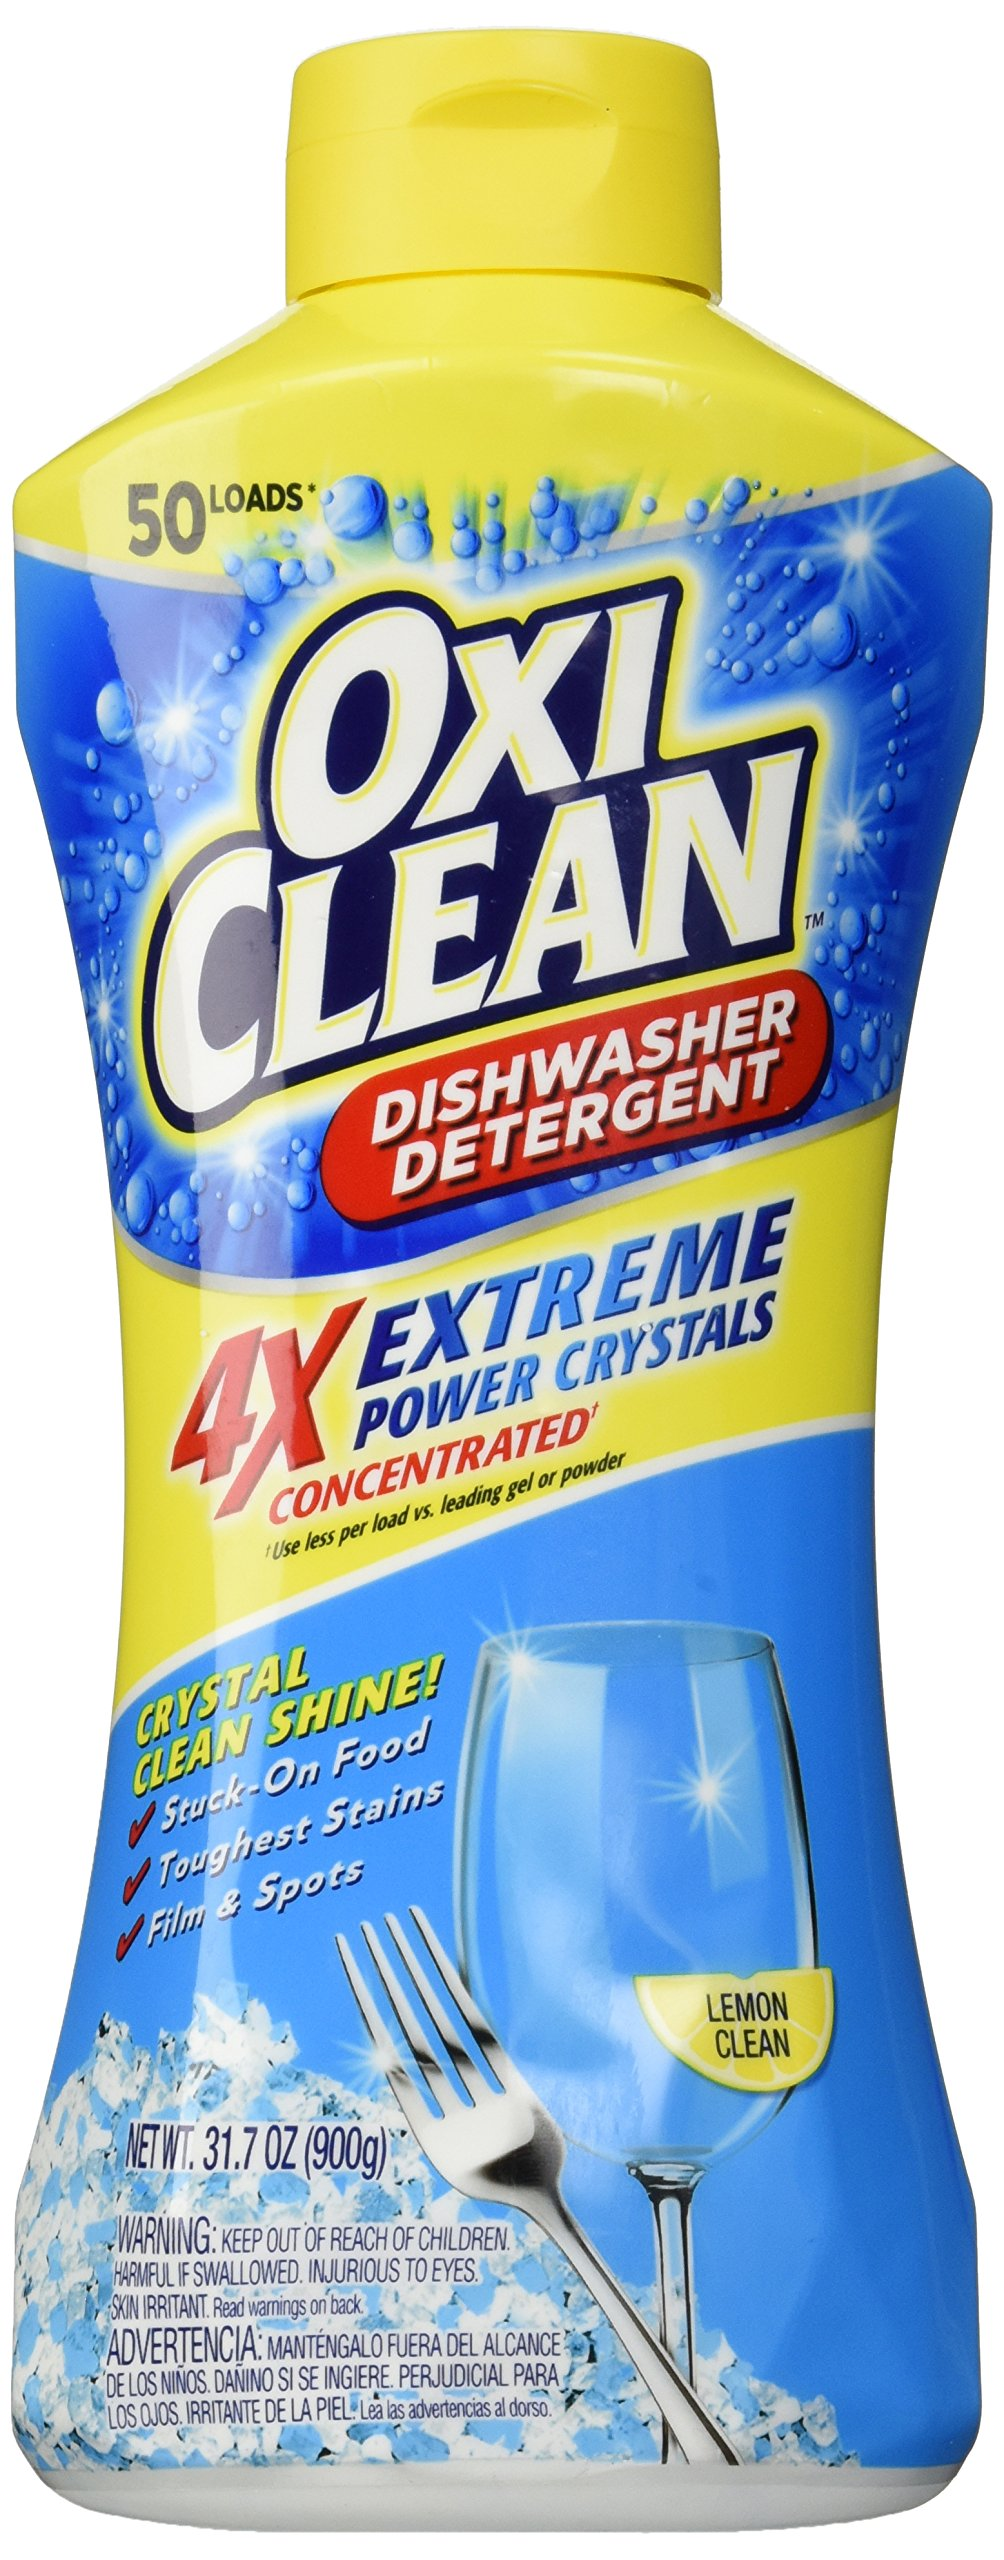 OxiClean Dishwasher Detergent, Lemon Clean, 31.7 Oz by OxiClean (Image #1)